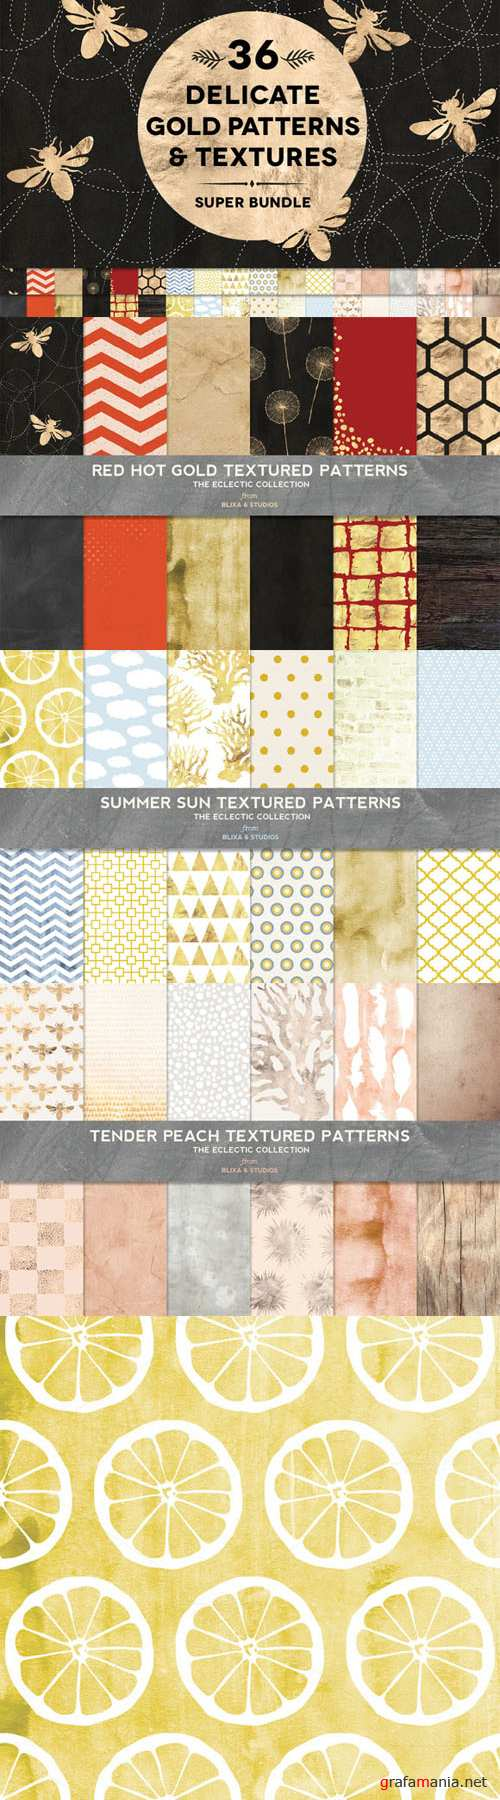 36 Delicate Gold Patterns & Textures - Creativemarket 315204